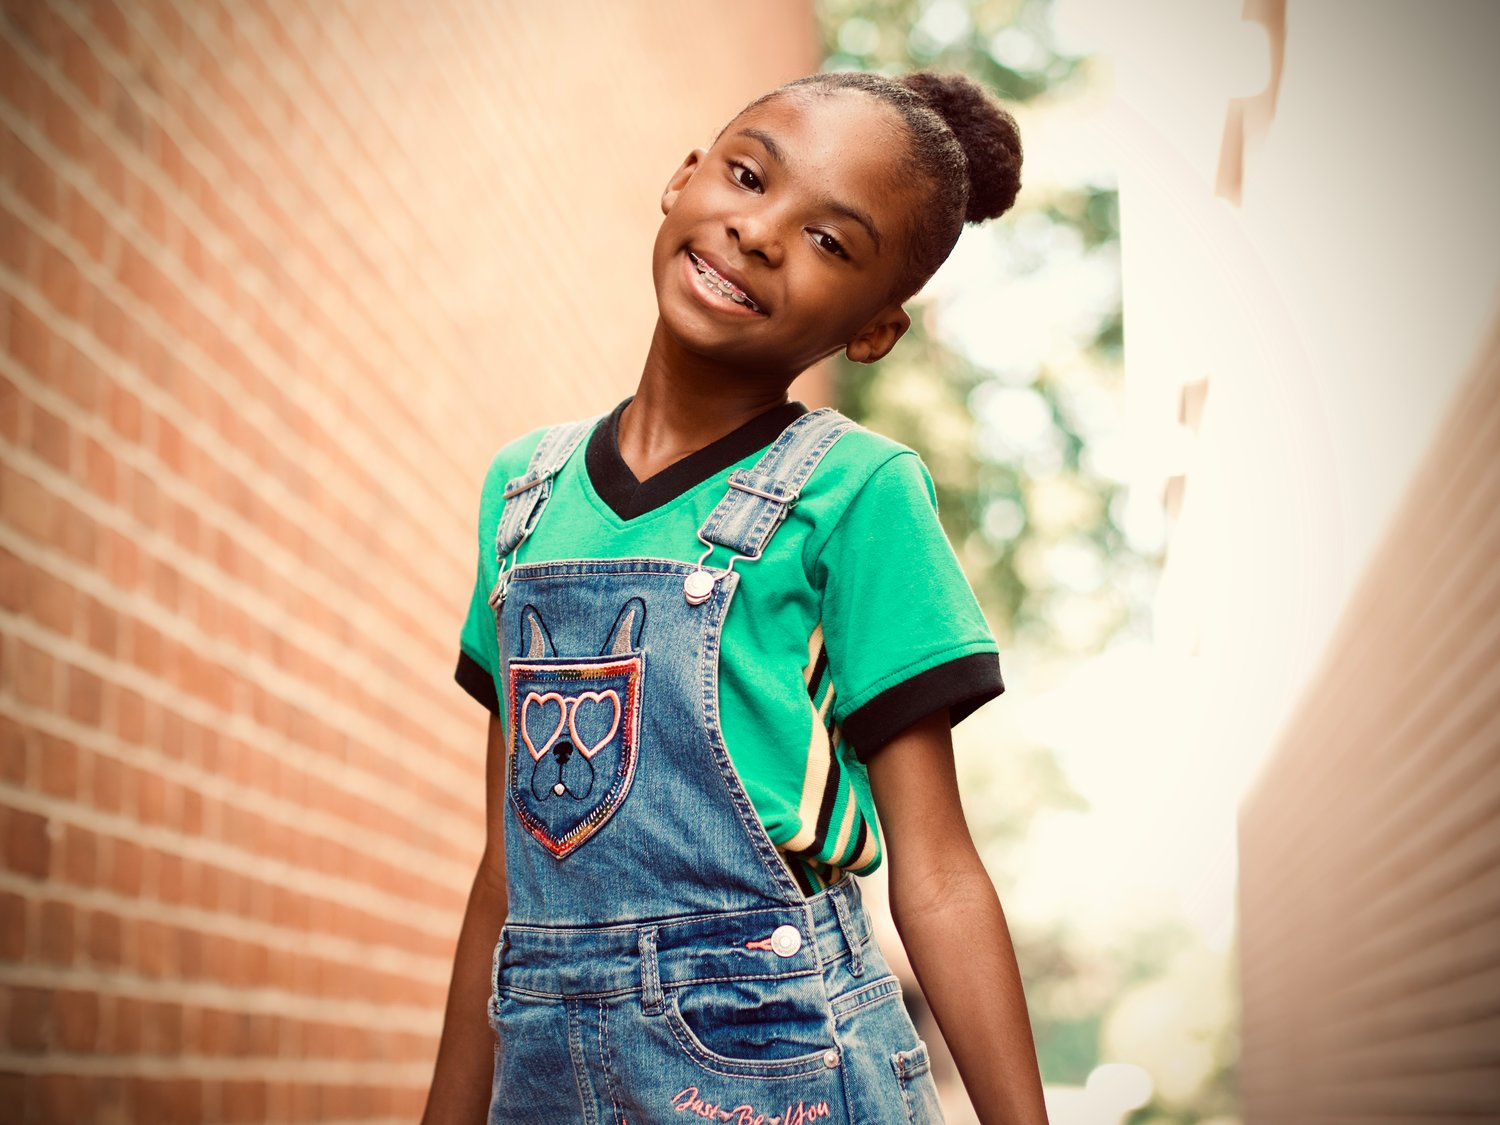 Eleven-year-old gospel singer Janessa Smith, of West Hempstead, was nominated for the 2021 Voices of Gospel Music Awards in two categories last Sunday.